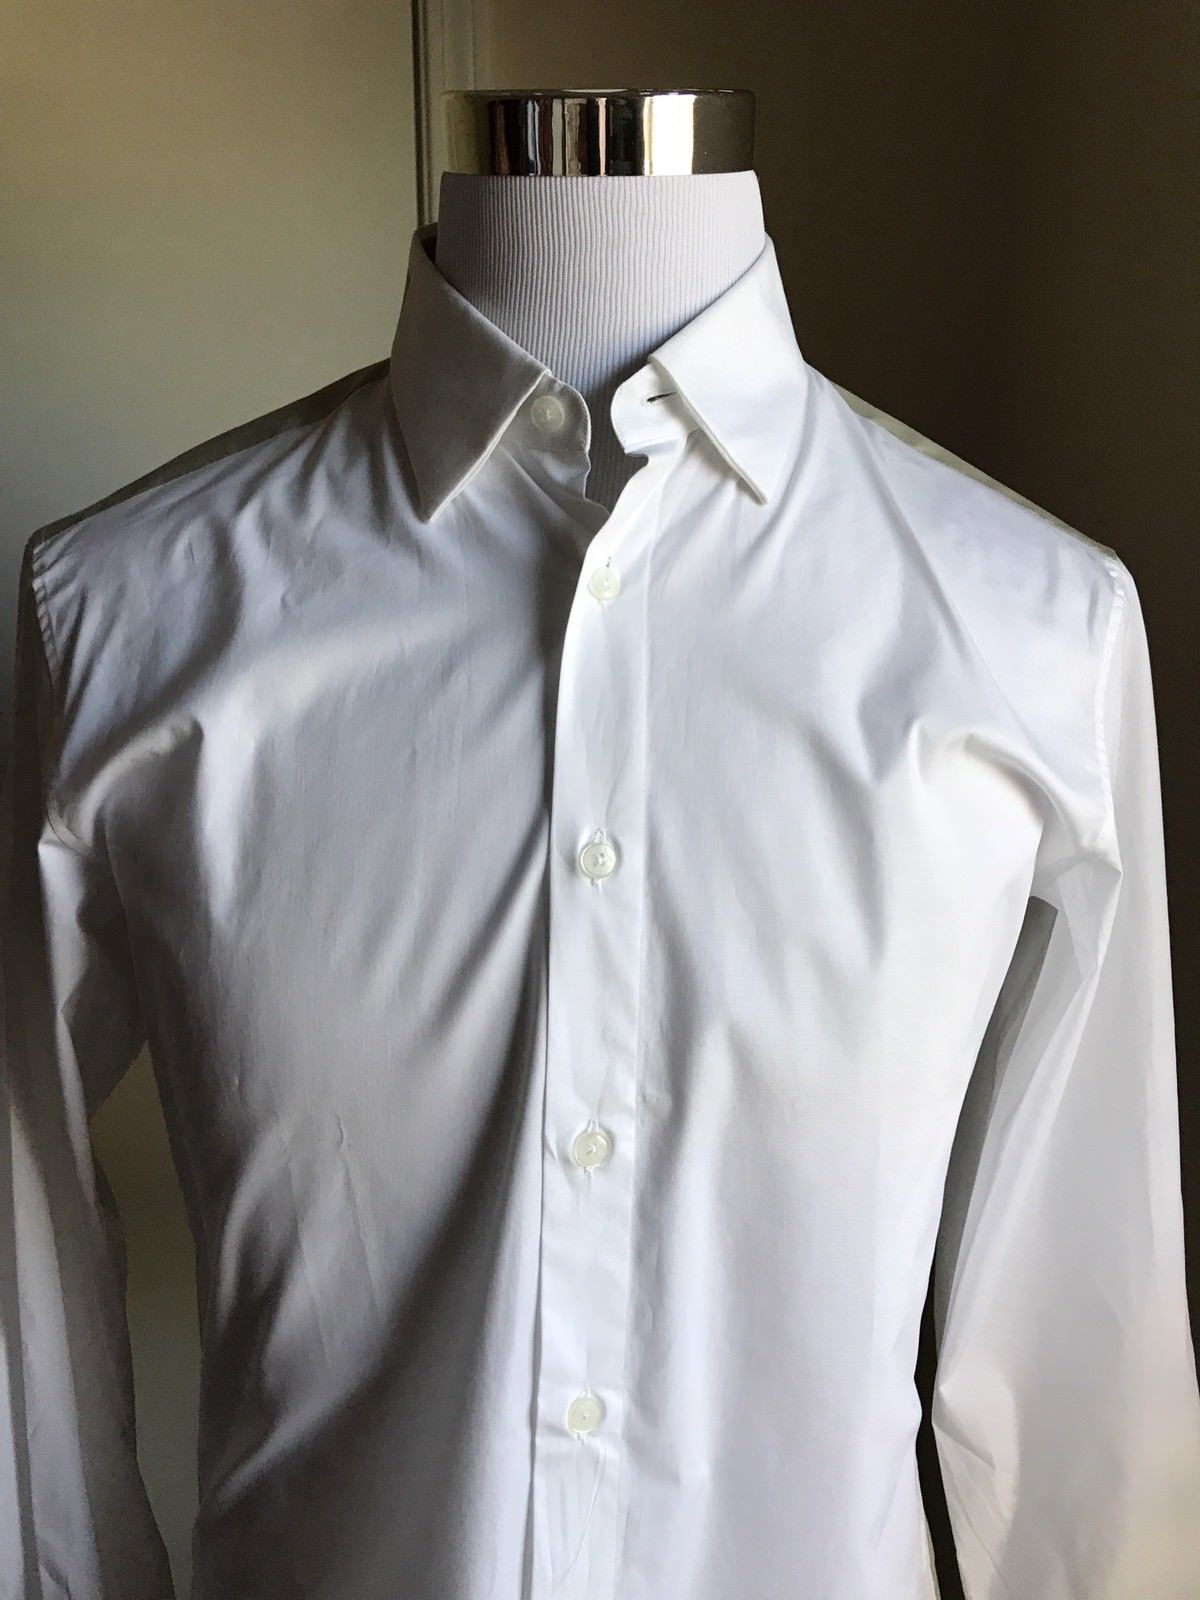 New $275 Z Zegna Dress Shirt White/Green Size 41/16 - BAYSUPERSTORE